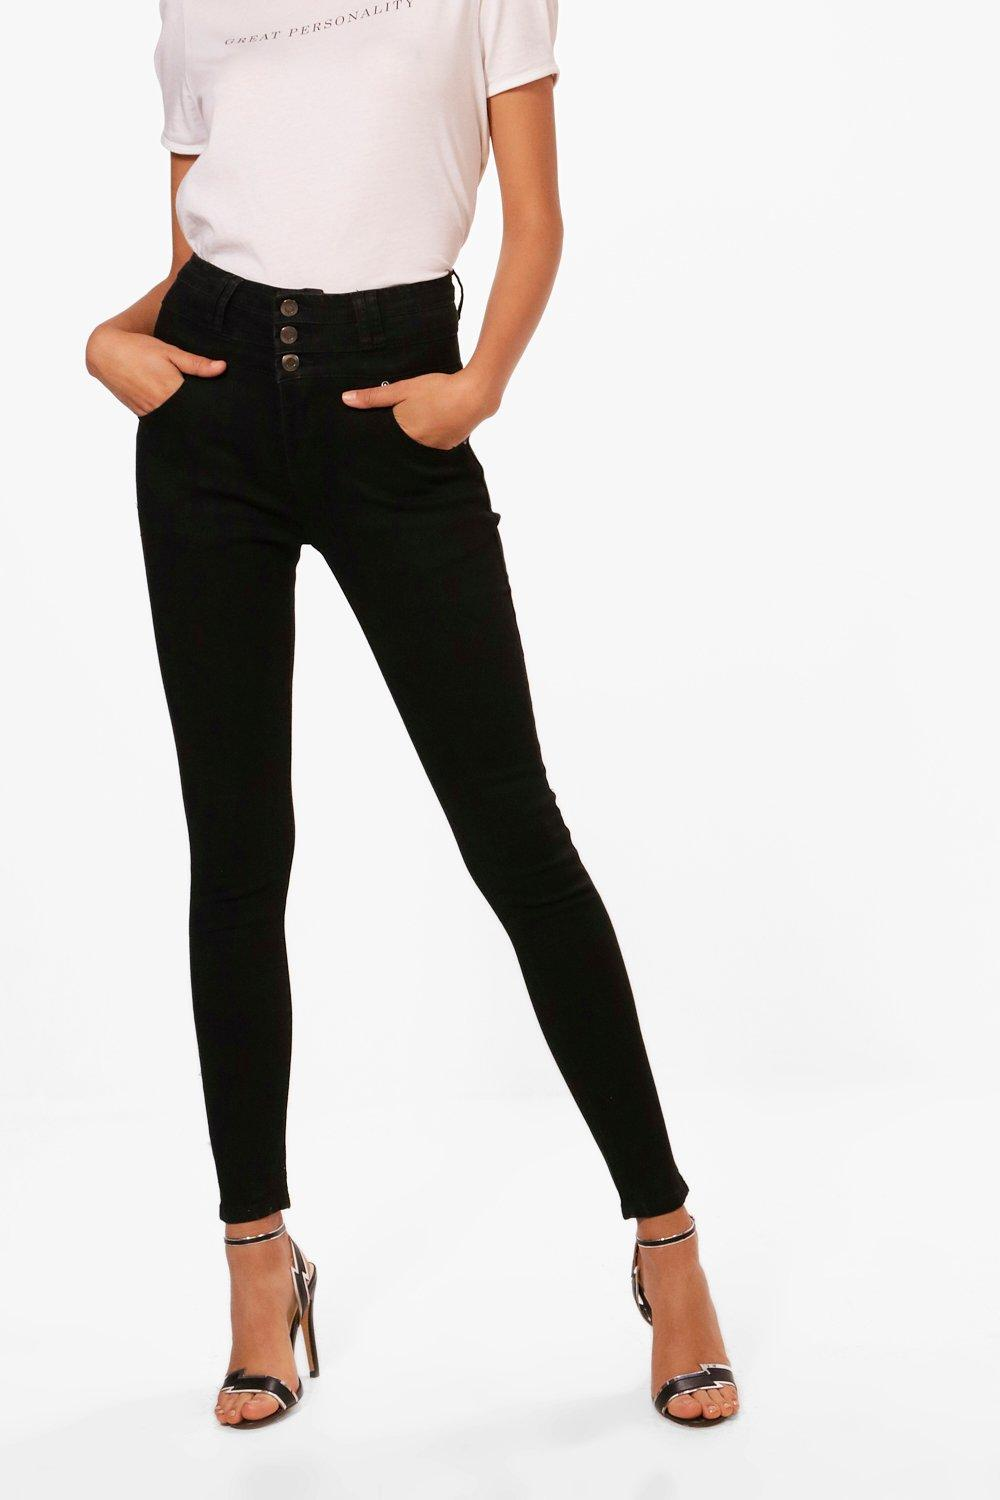 shoptagr sandy super high waisted skinny jeans by boohoo. Black Bedroom Furniture Sets. Home Design Ideas